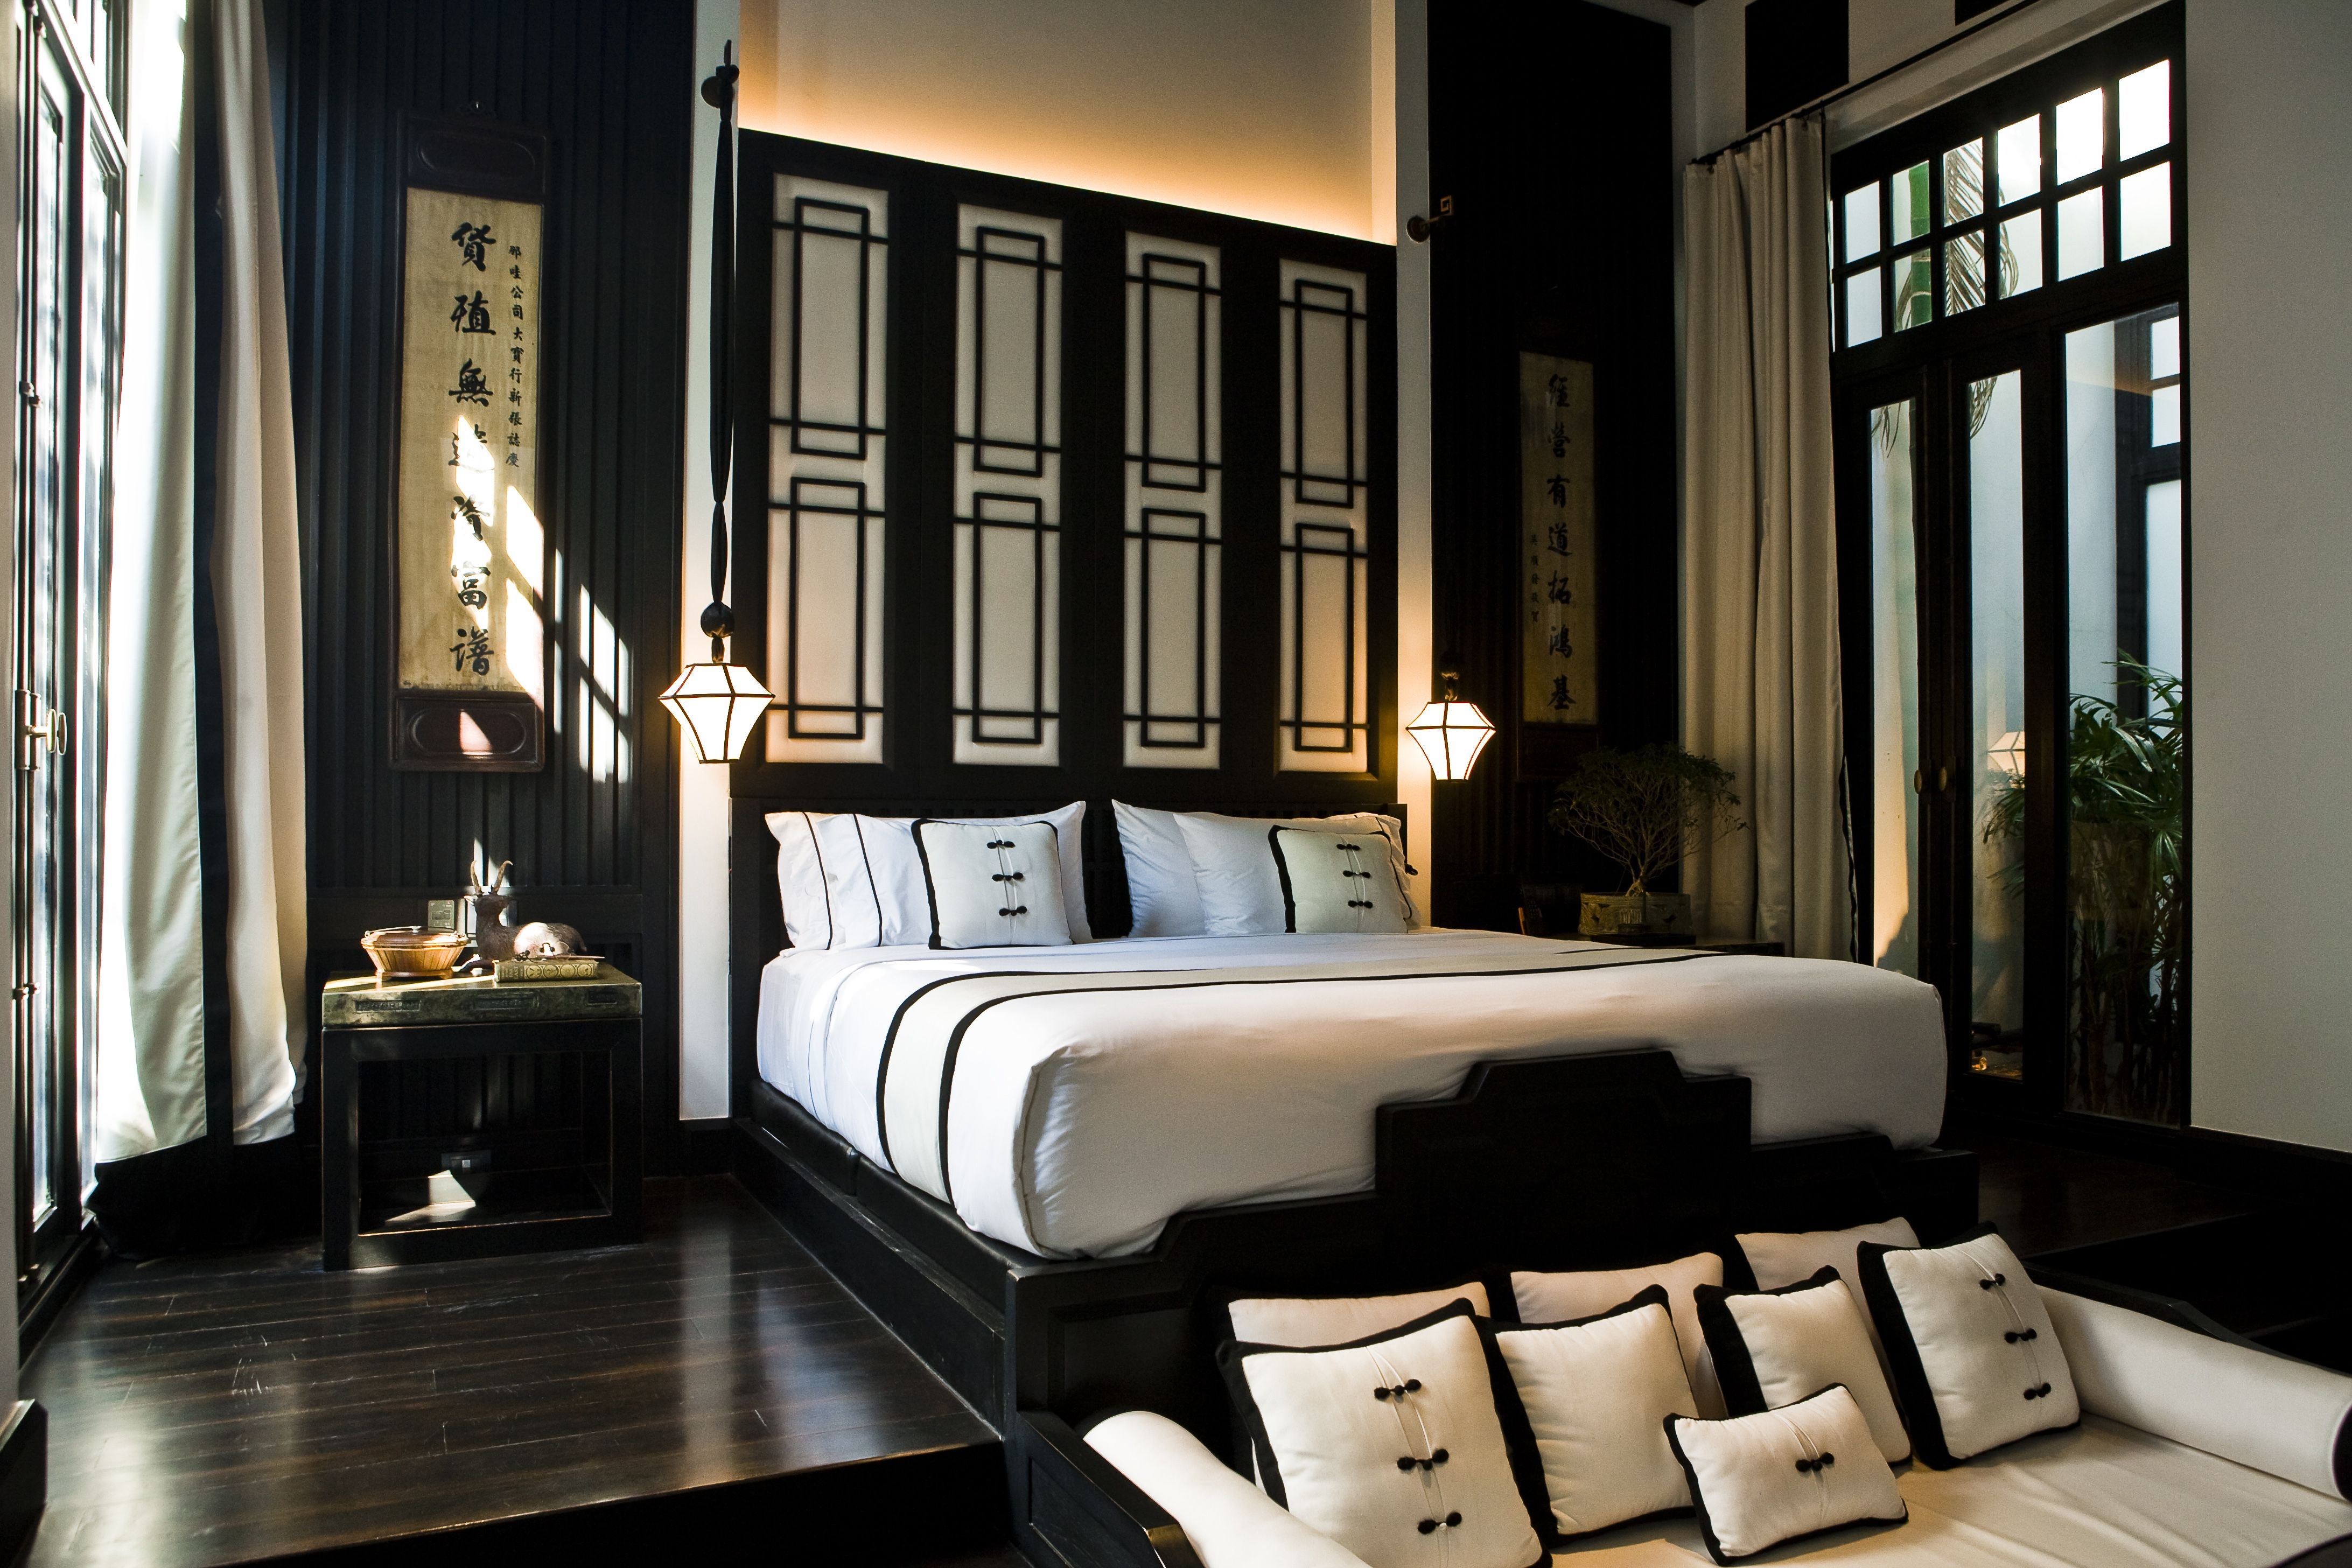 what's new in bangkok, thailand | bed couch, classy chic and king beds